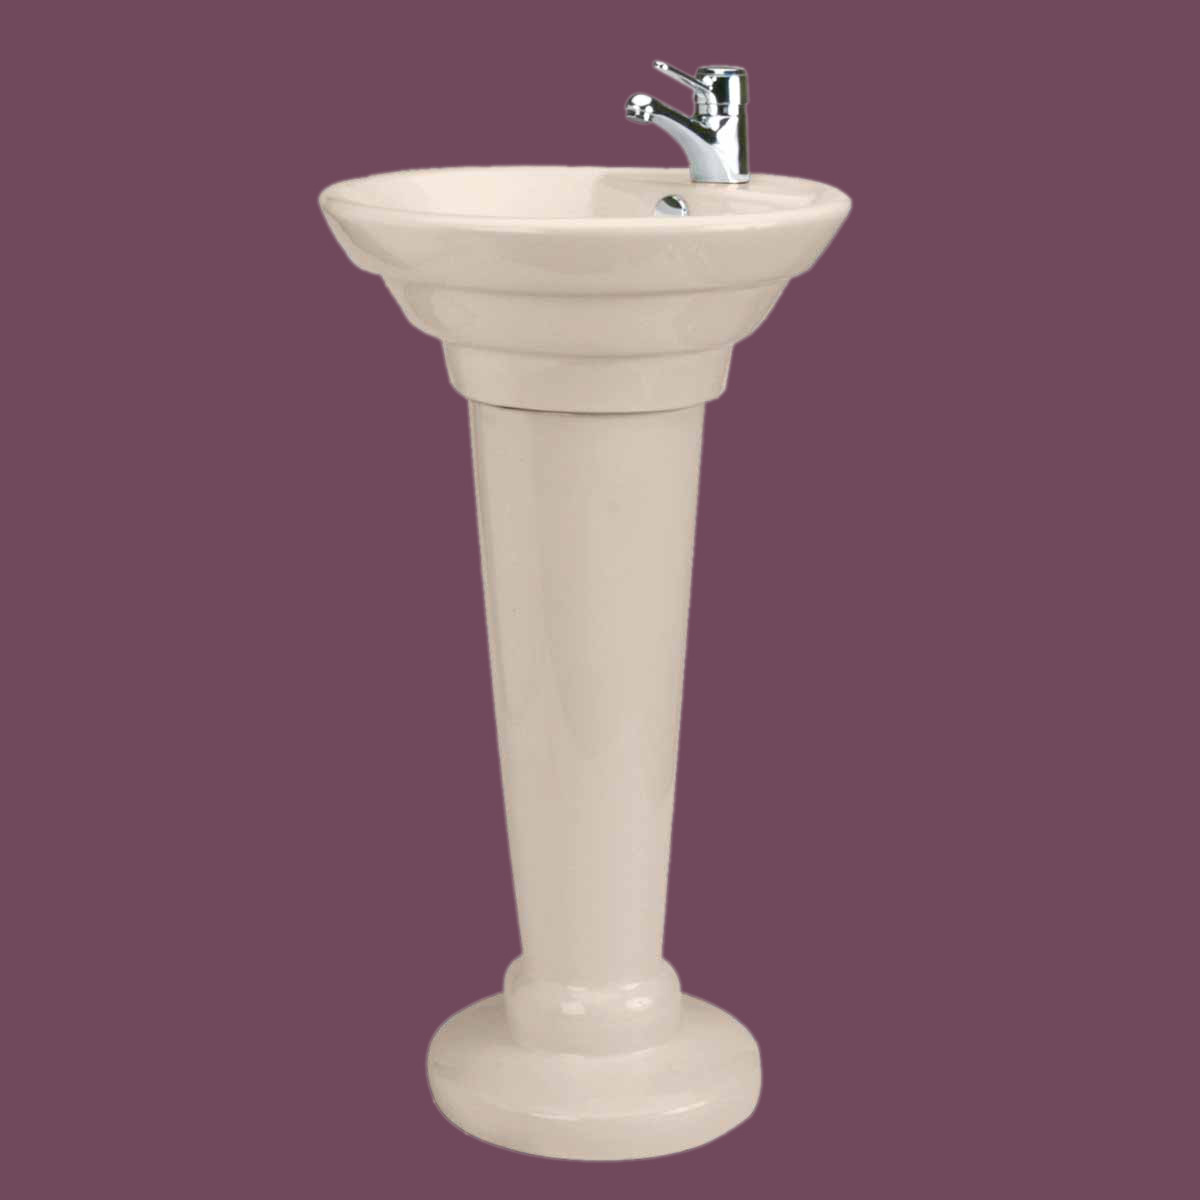 China Sink : sinks itemno 10771 item name bathroom pedestal sink bone china ...